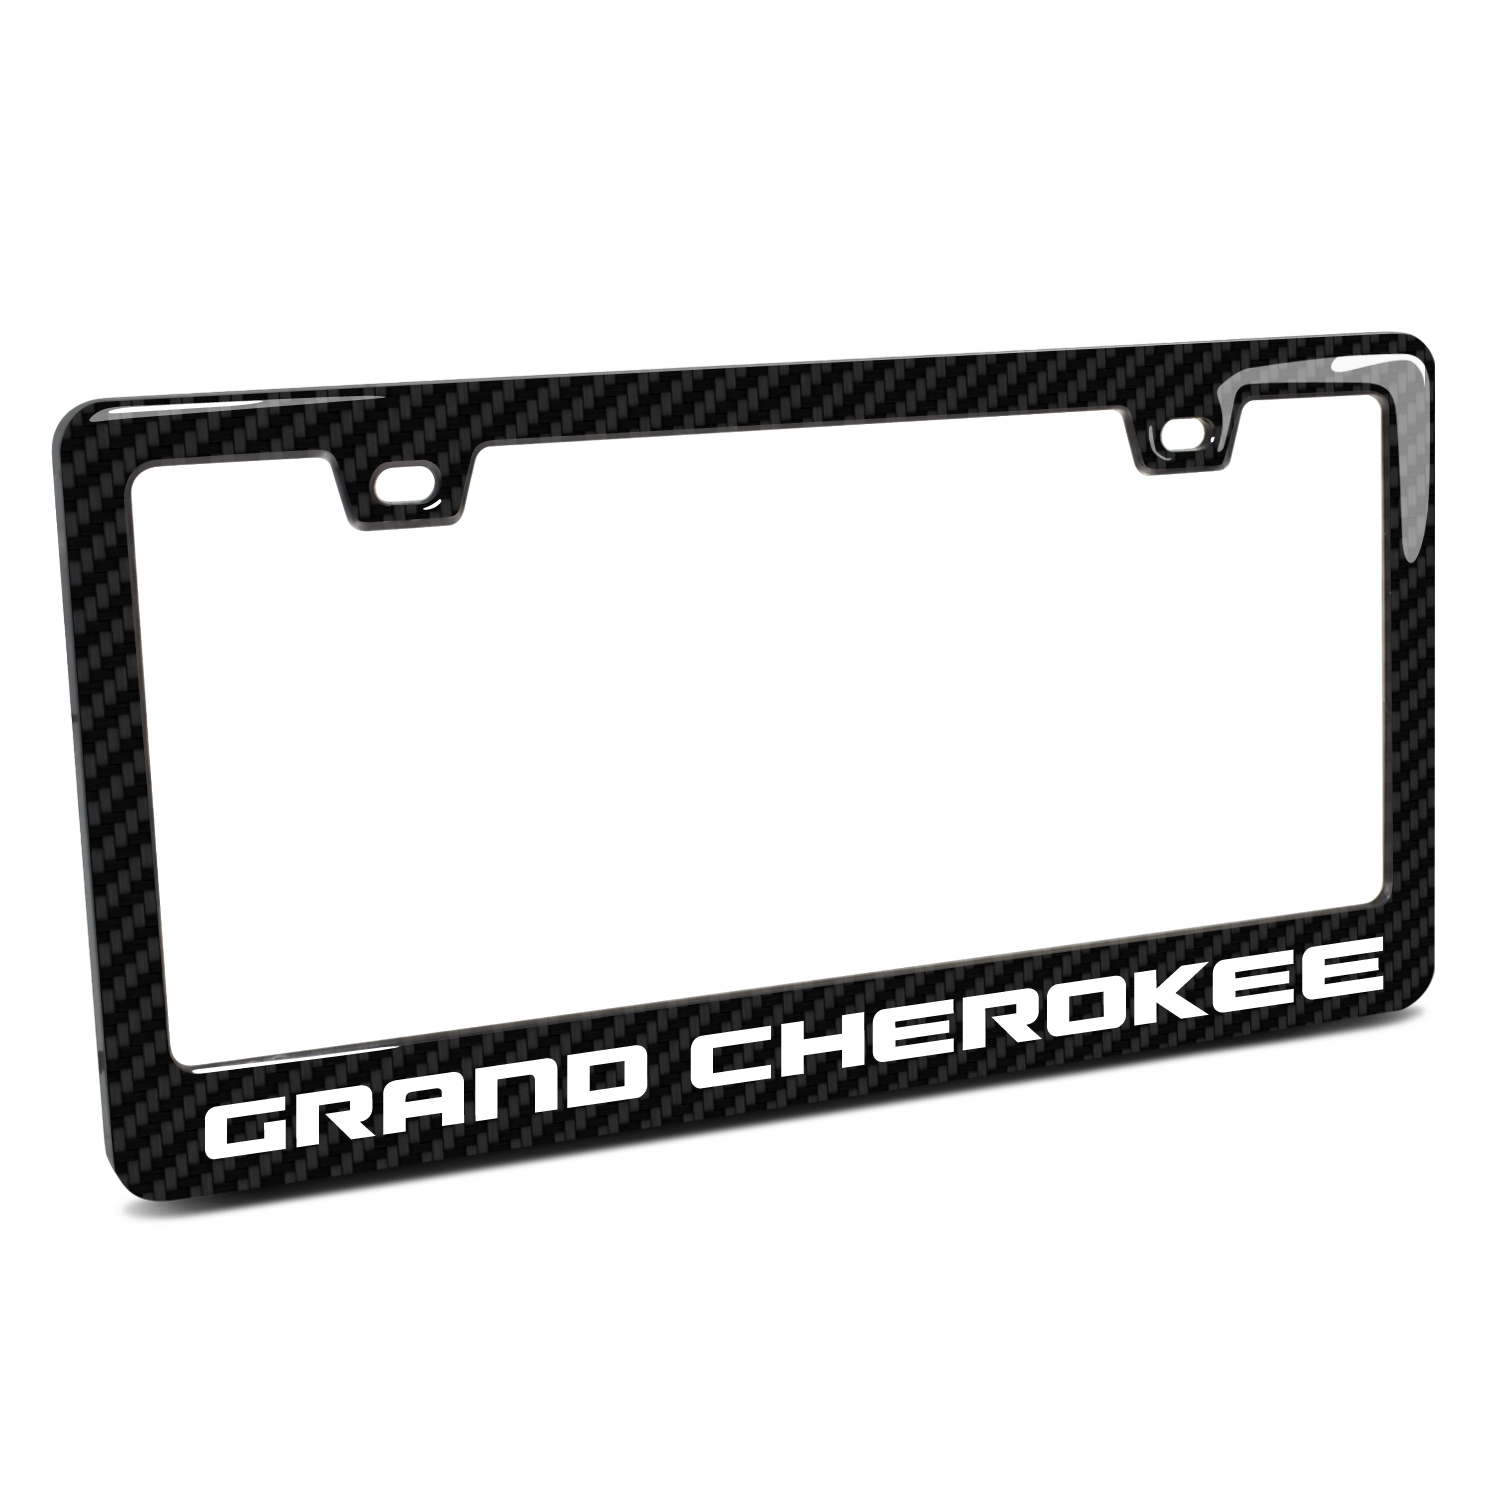 Jeep Grand Cherokee Black Real 3K Carbon Fiber Finish ABS Plastic License Plate Frame